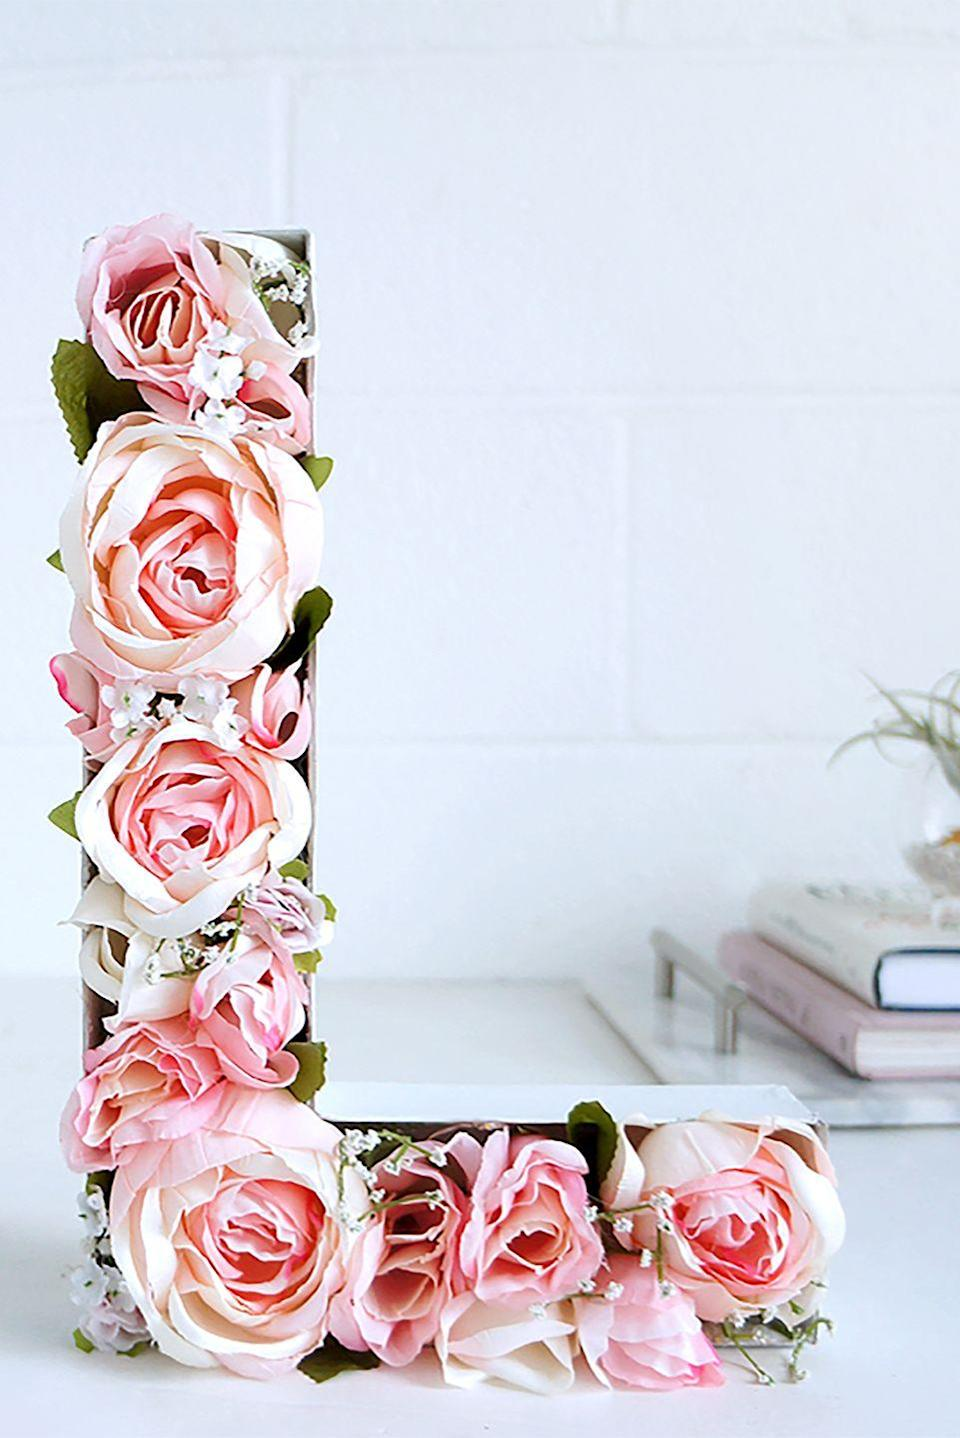 """<p>This flower-filled monogram letter will add a delicate touch to any room in your house. </p><p><strong>Get the tutorial at <a href=""""http://blog.lulus.com/general/blooming-monogram-diy/"""" rel=""""nofollow noopener"""" target=""""_blank"""" data-ylk=""""slk:Lulu's"""" class=""""link rapid-noclick-resp"""">Lulu's</a>.</strong> </p><p><strong><a class=""""link rapid-noclick-resp"""" href=""""https://www.amazon.com/Paper-Mache-Letter-X5-1-Letter/dp/B0054G5UC8?tag=syn-yahoo-20&ascsubtag=%5Bartid%7C10050.g.2971%5Bsrc%7Cyahoo-us"""" rel=""""nofollow noopener"""" target=""""_blank"""" data-ylk=""""slk:SHOP LETTERS"""">SHOP LETTERS</a><br></strong></p>"""